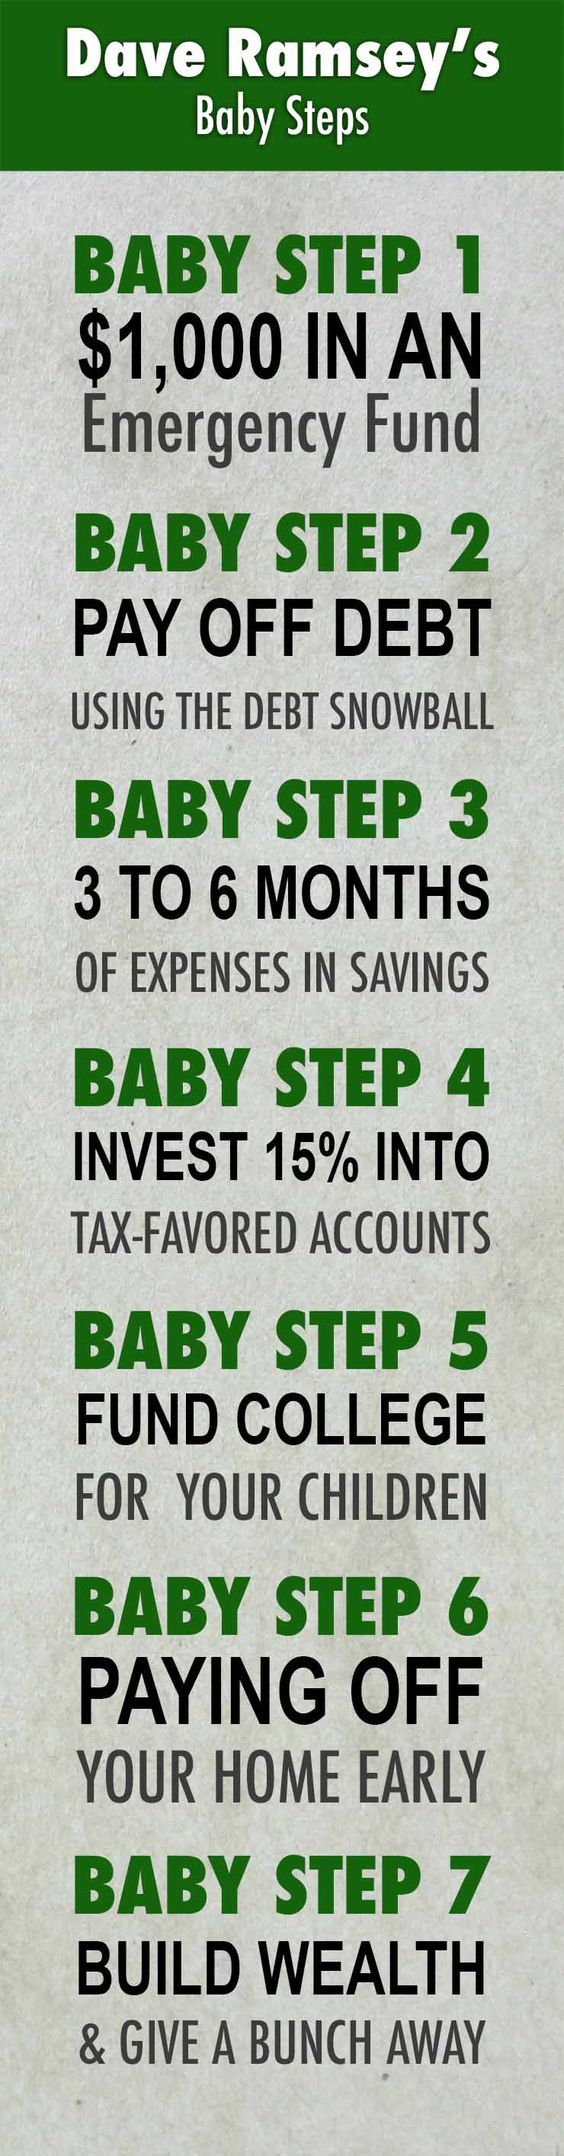 What Are Dave Ramsey's Baby Steps and Why Do They Work?                                                                                                                                                     More